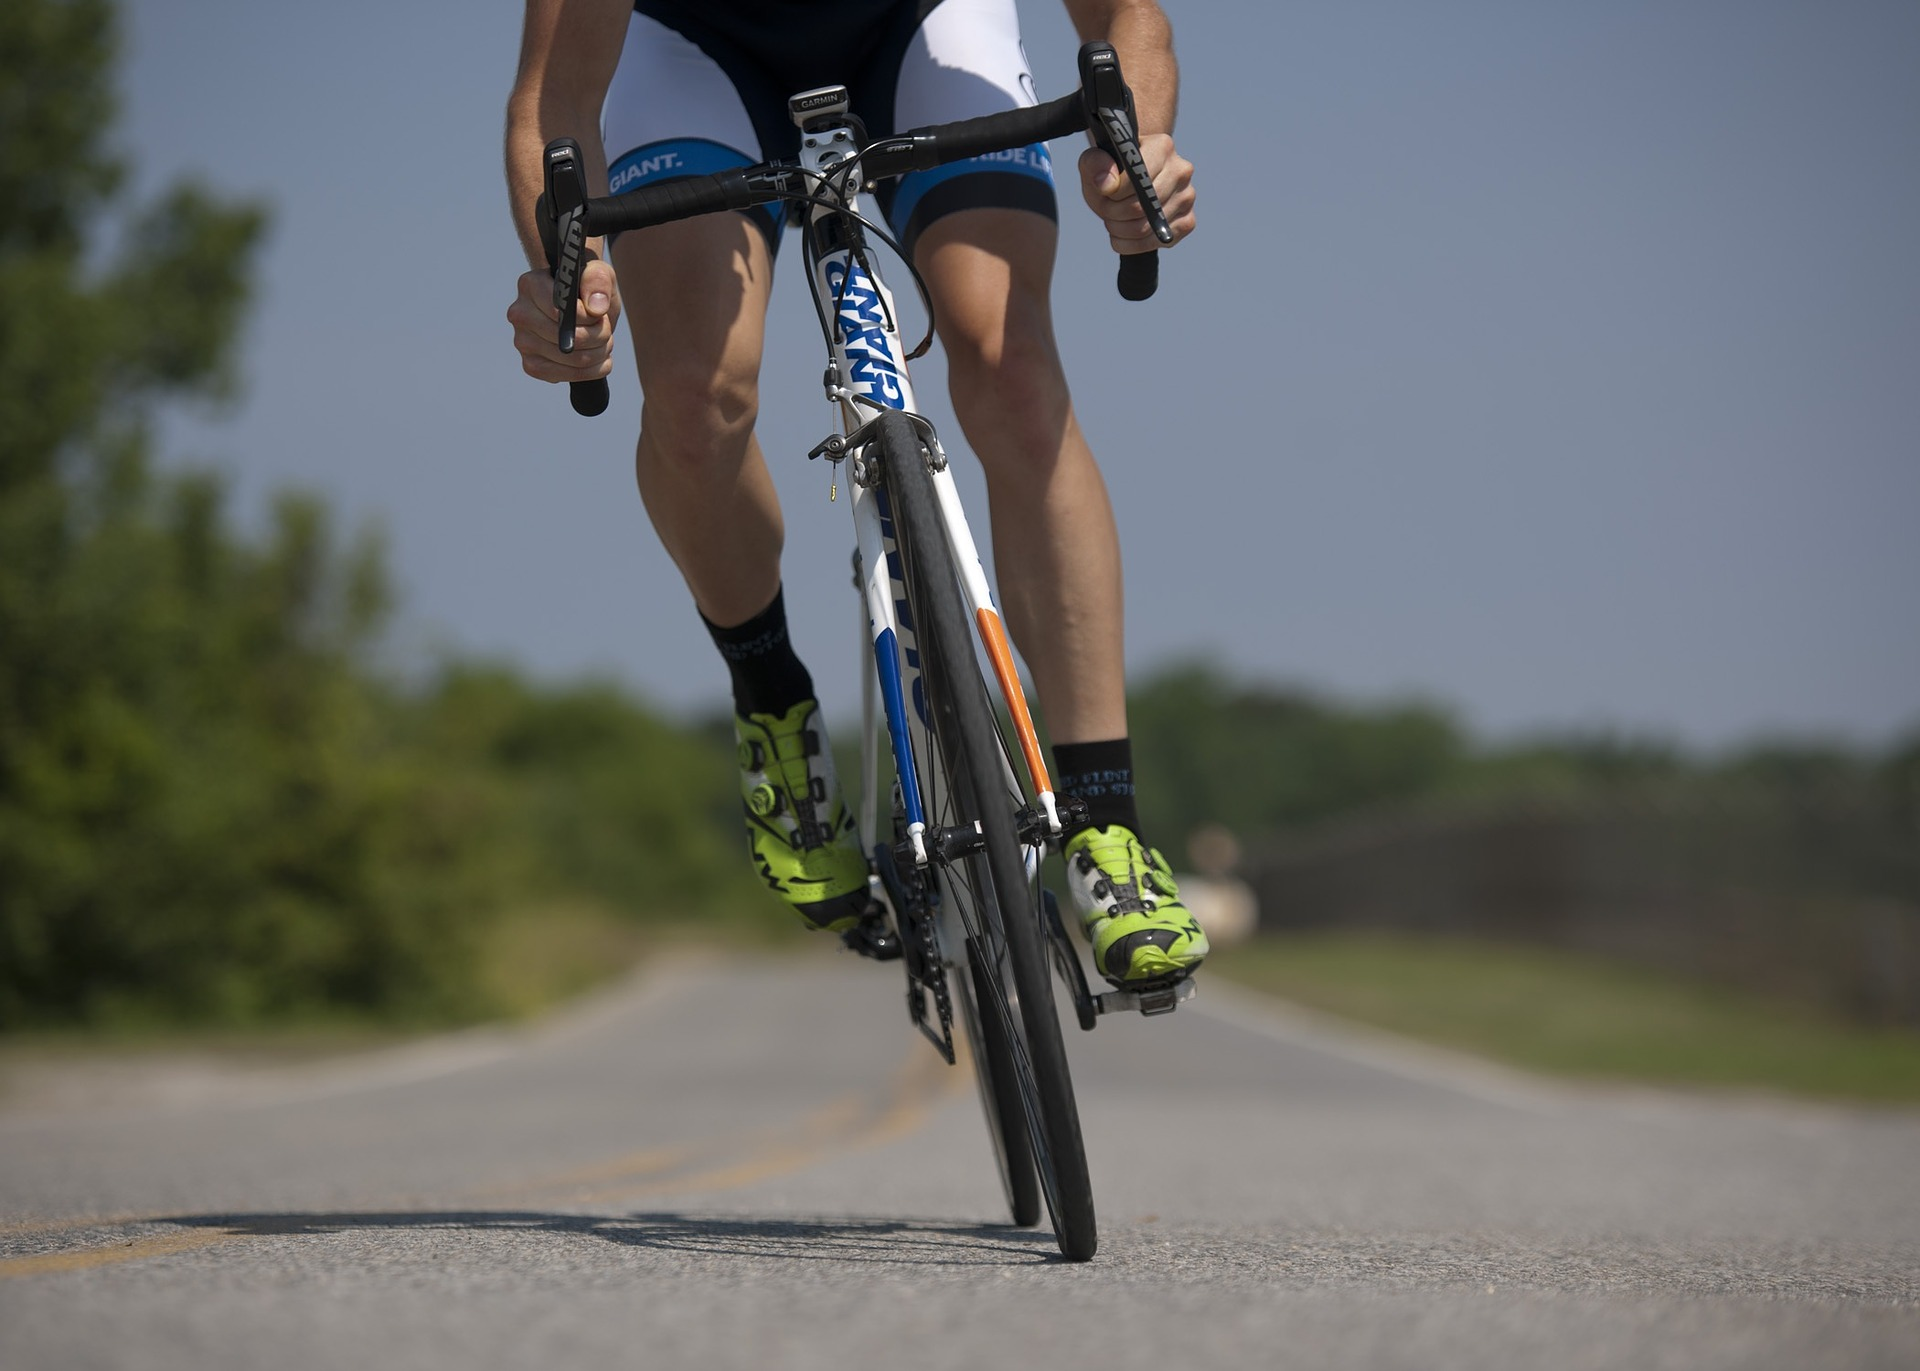 Benefits of sports massage for cyclists